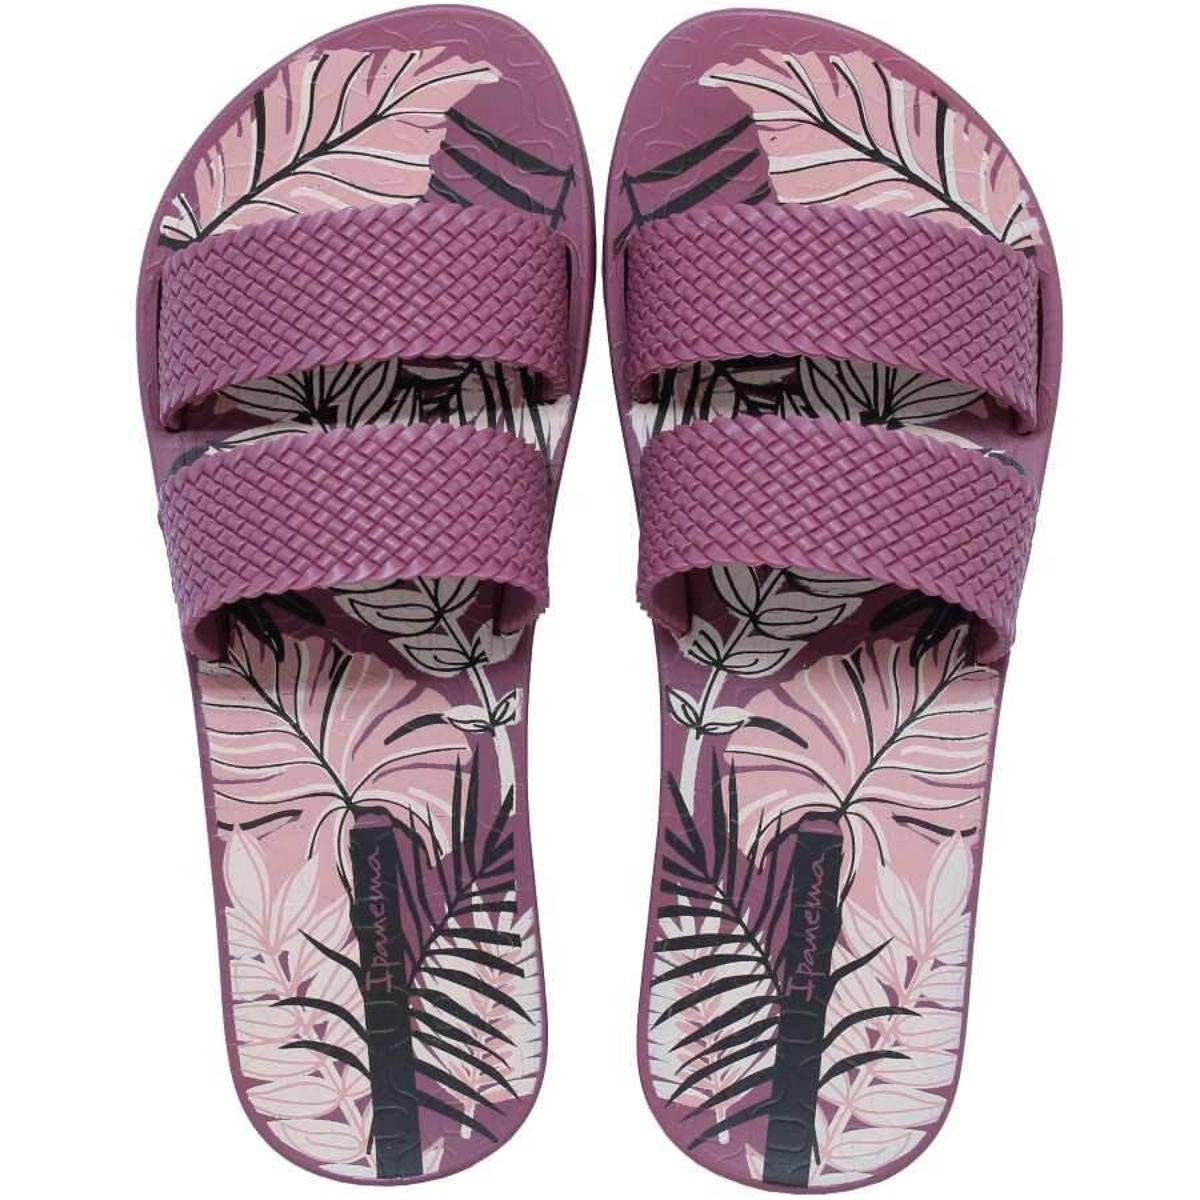 Ipanema City Bordô Chinelo Chinelo Feminino Ipanema Printy qRnE86xp